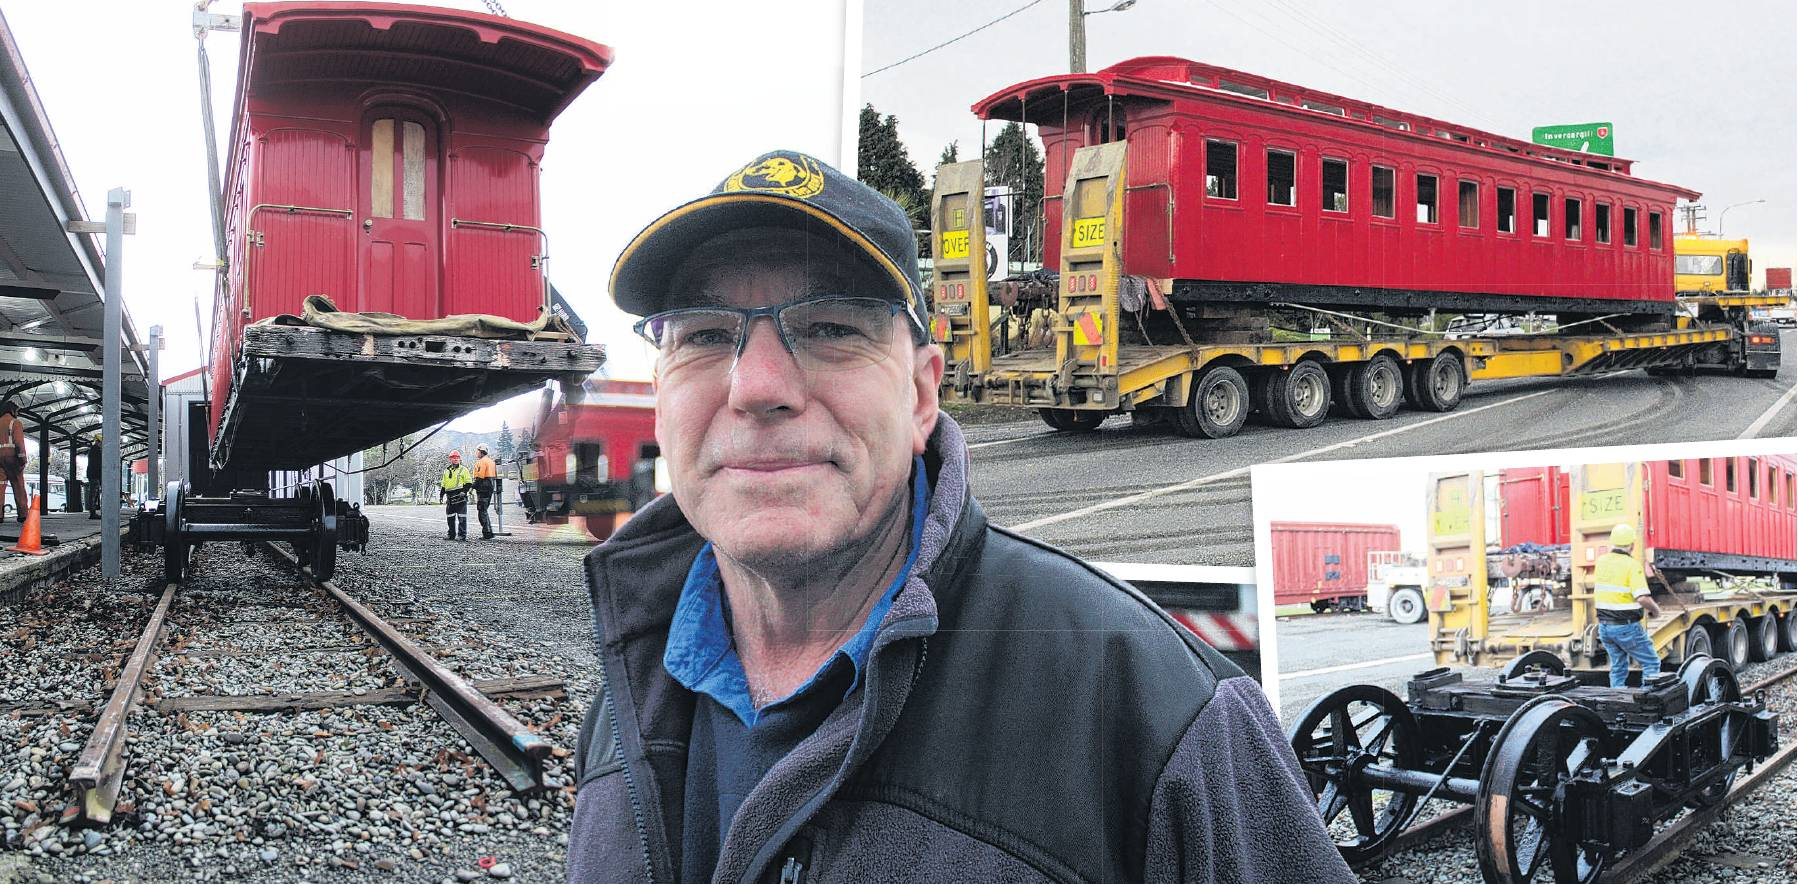 The railway carriage A199, recovered from Wairio, in Western Southland, last year, is delivered to its new home at the Lumsden Railway Precinct yesterday. Lumsden Heritage Trust chairman John Titter says it was an exciting day for all those who had helped